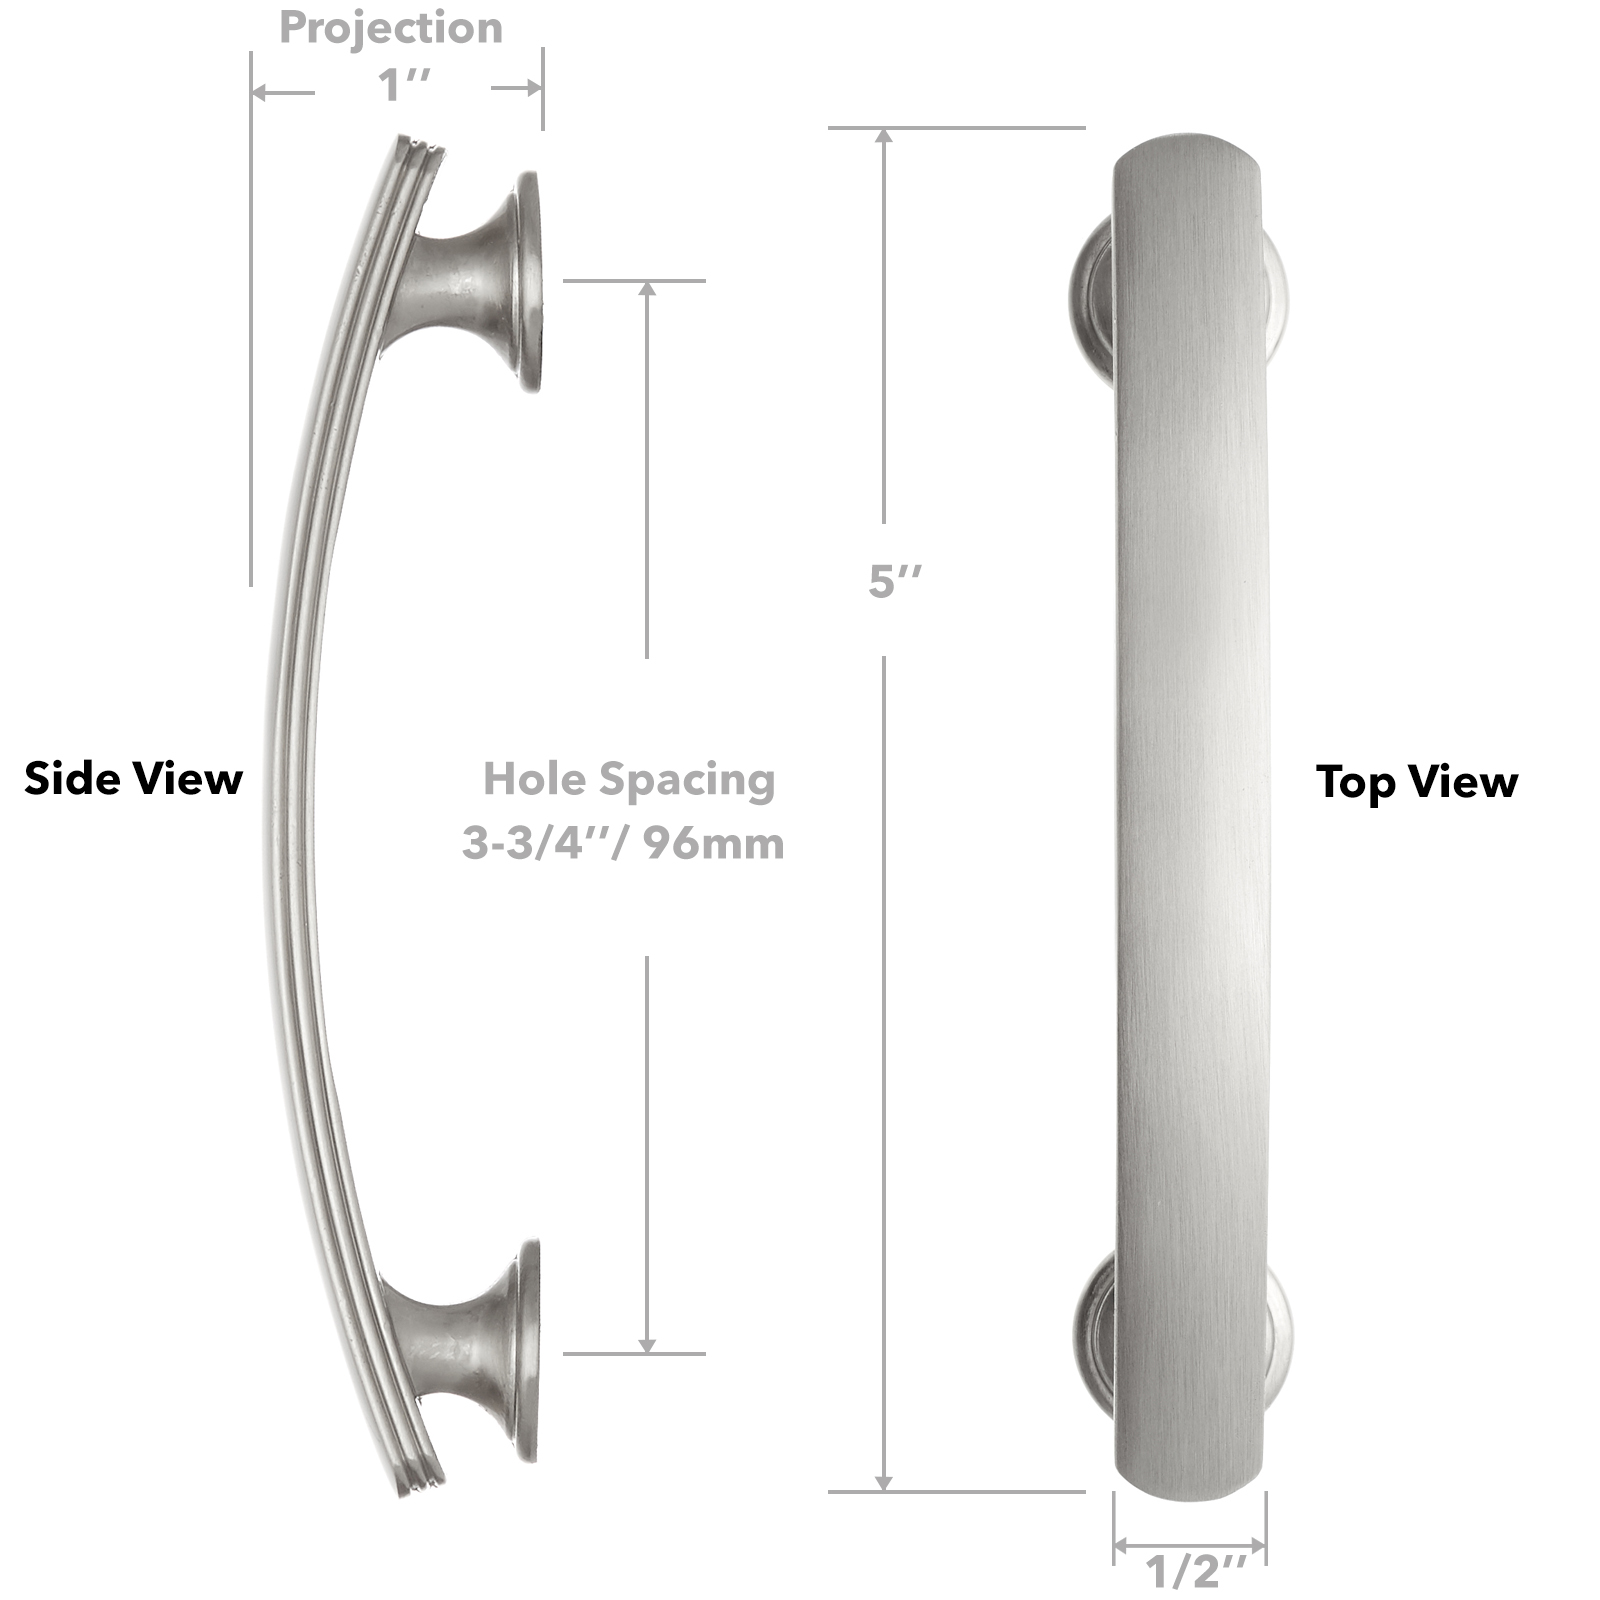 """thumbnail 6 - Satin Nickel 3-3/4"""" Curved Arch Kitchen Cabinet Handles Pulls Hardware"""